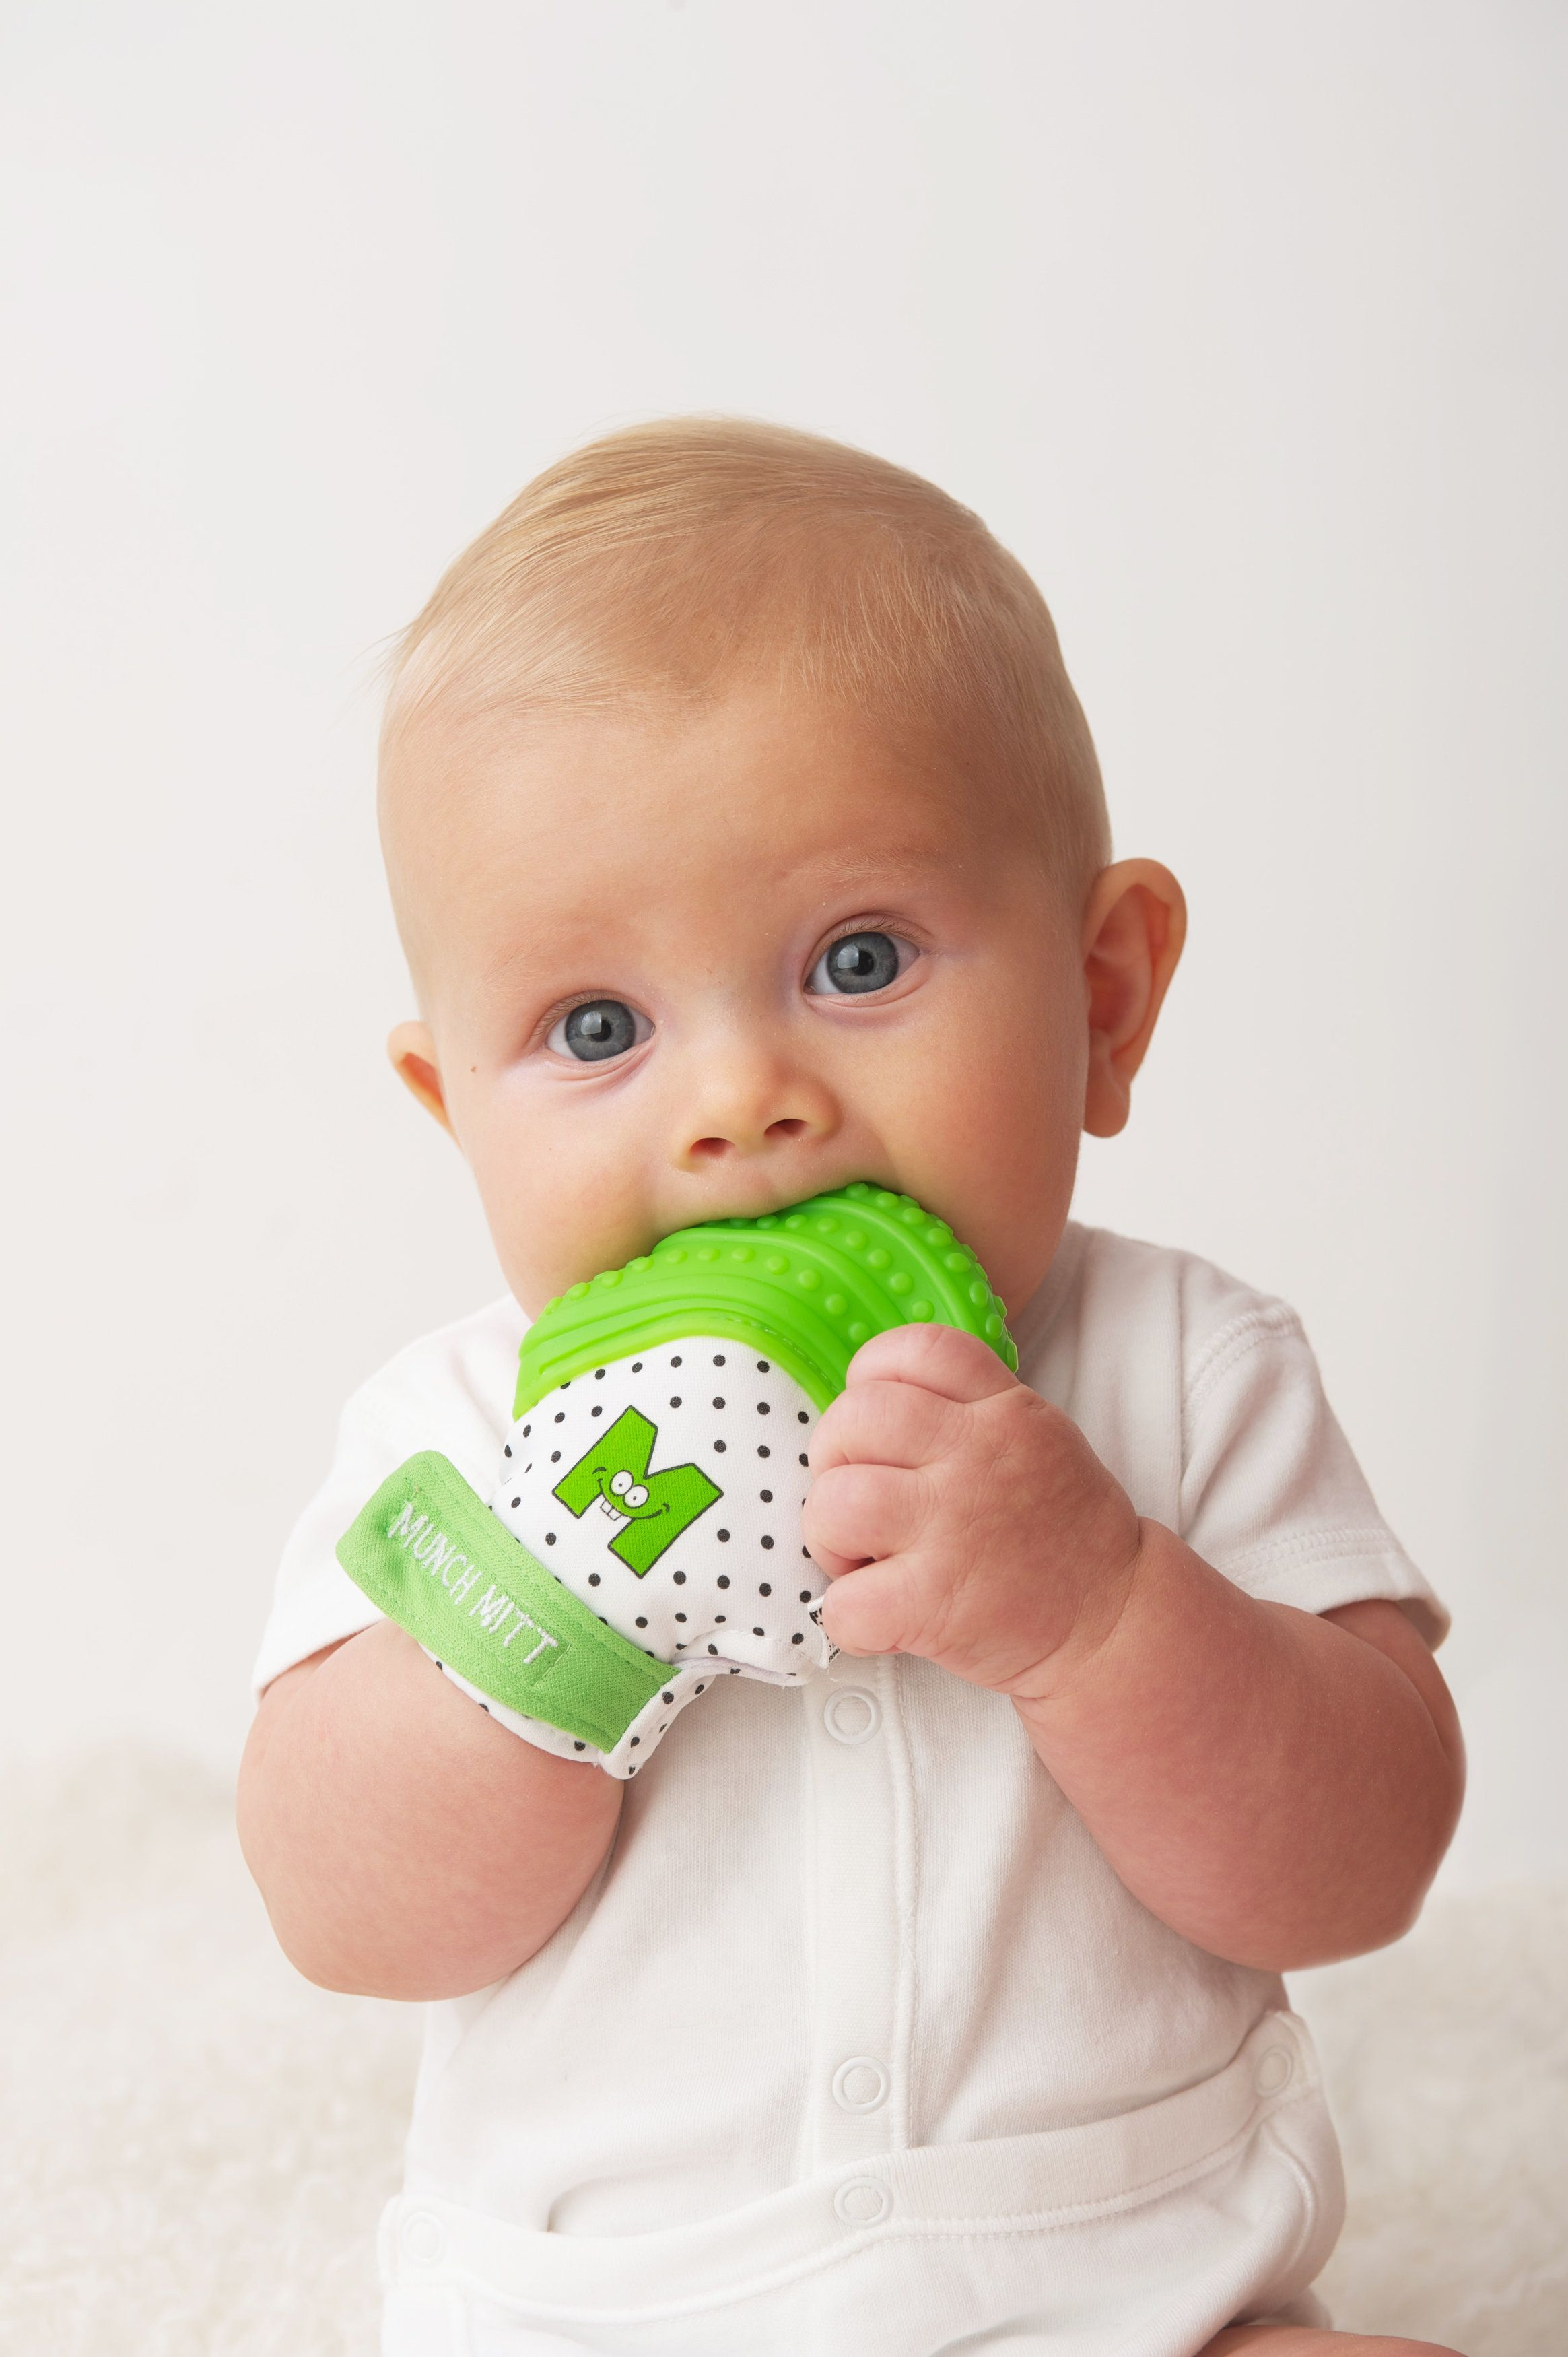 Baby Teething Ring Pacifier Non Toxic Silicone Teether Soother Gum Toy Green Dum